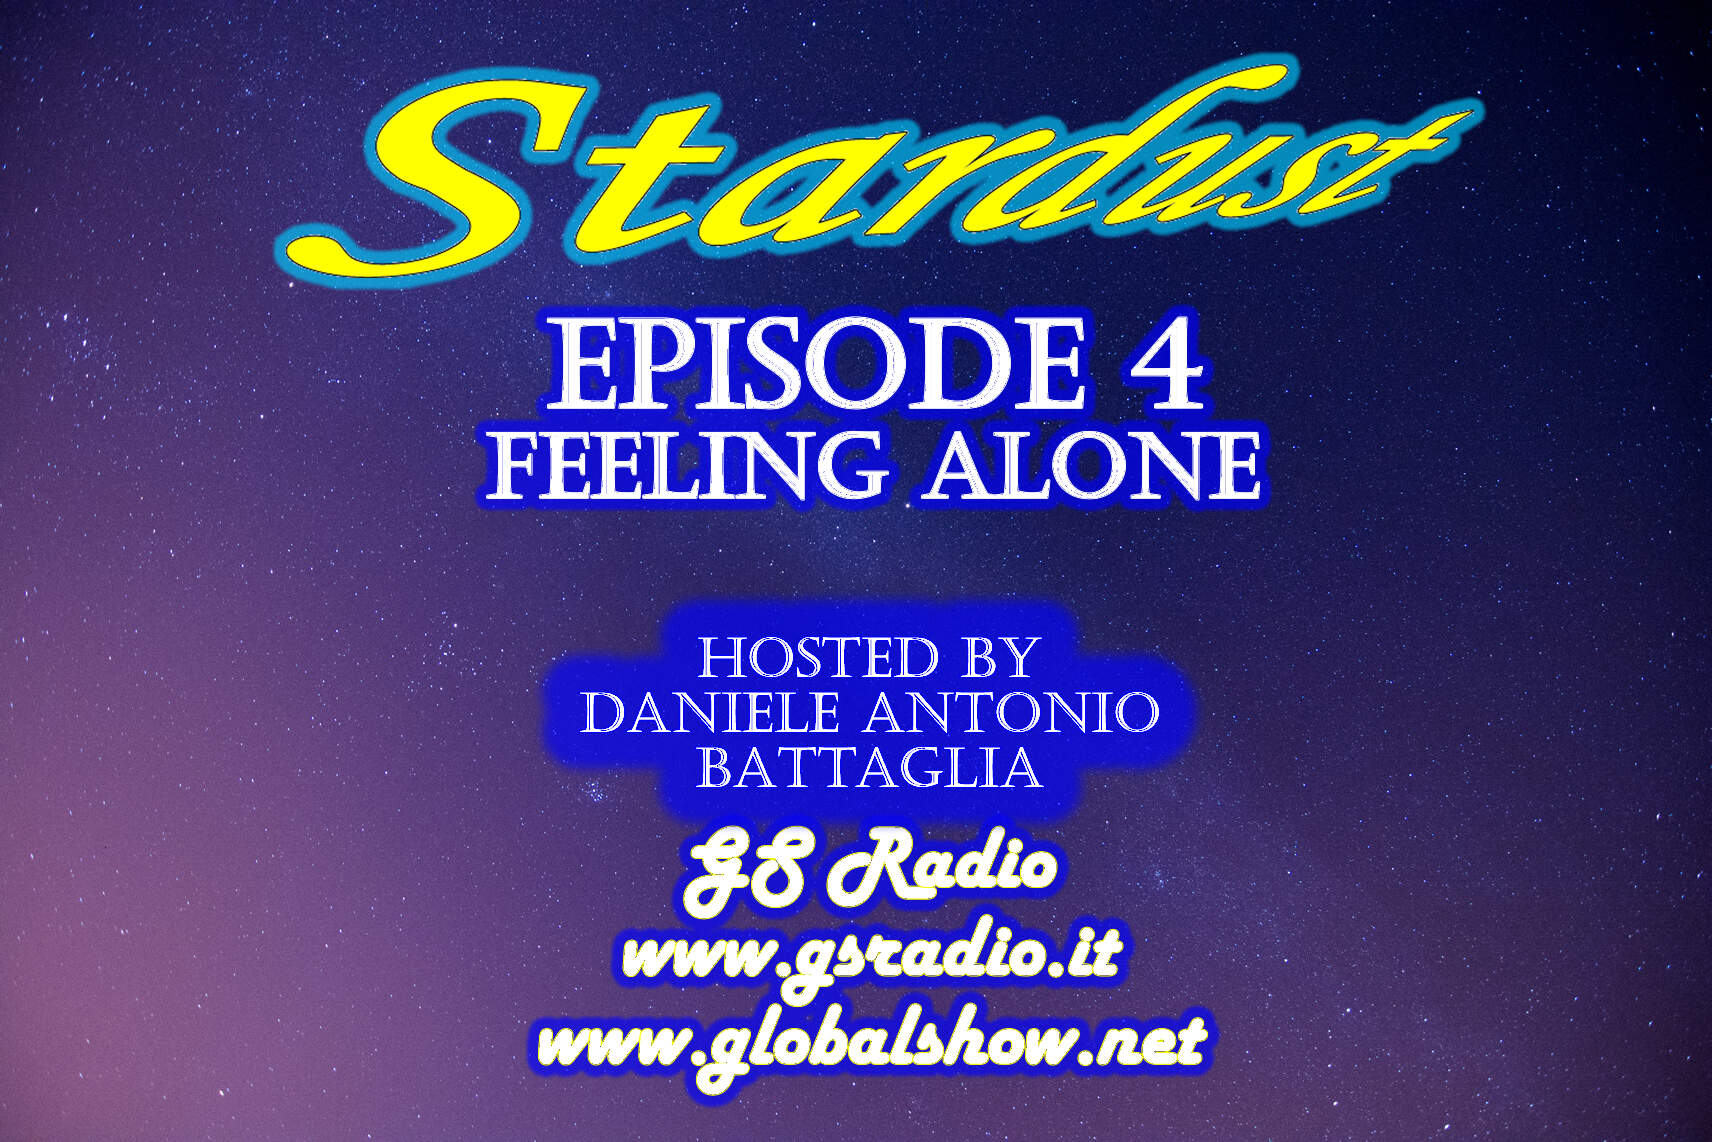 Episode 4 - Feeling alone